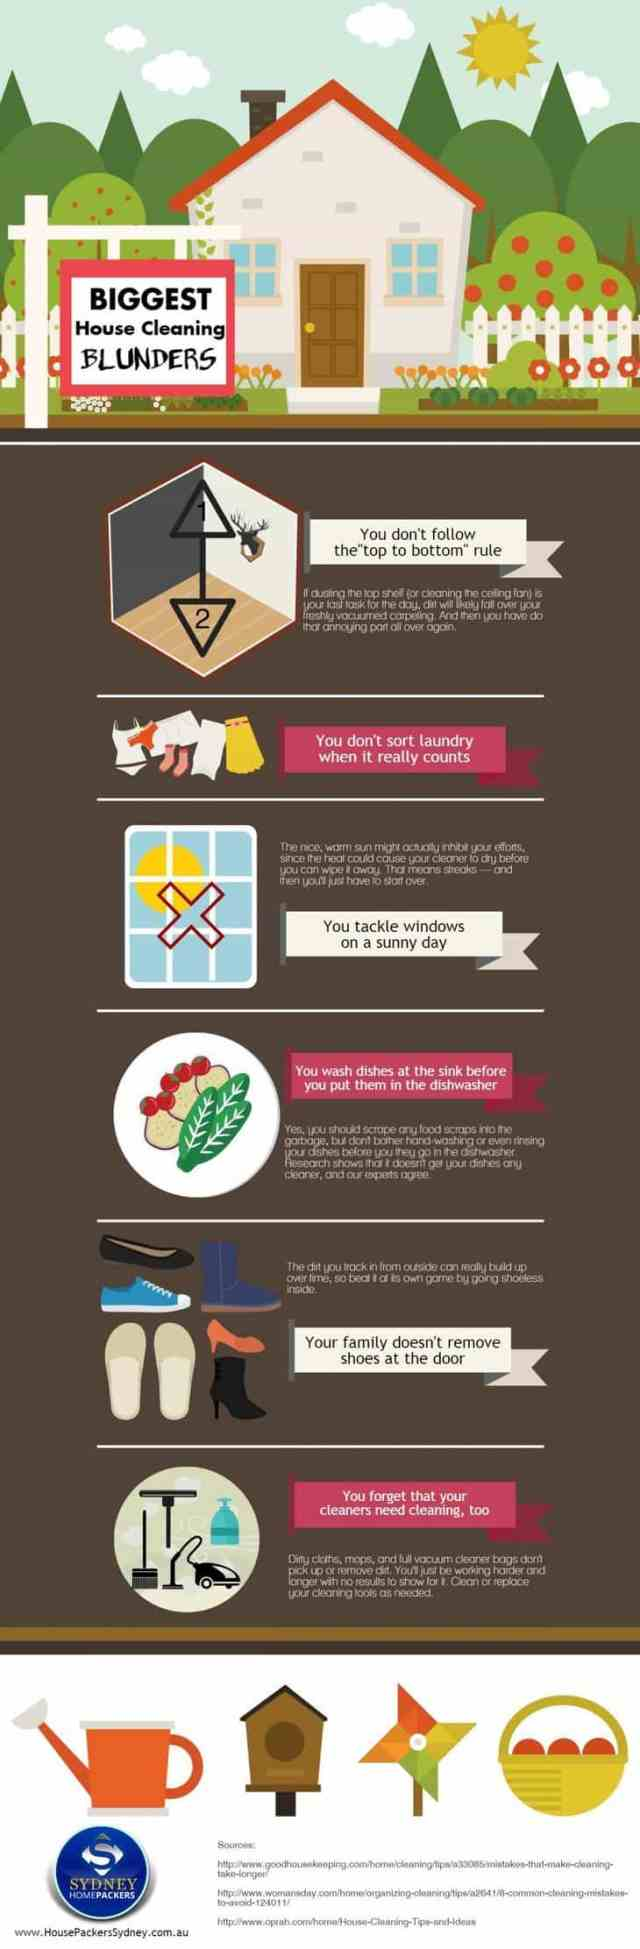 House Cleaning Tips - infographic